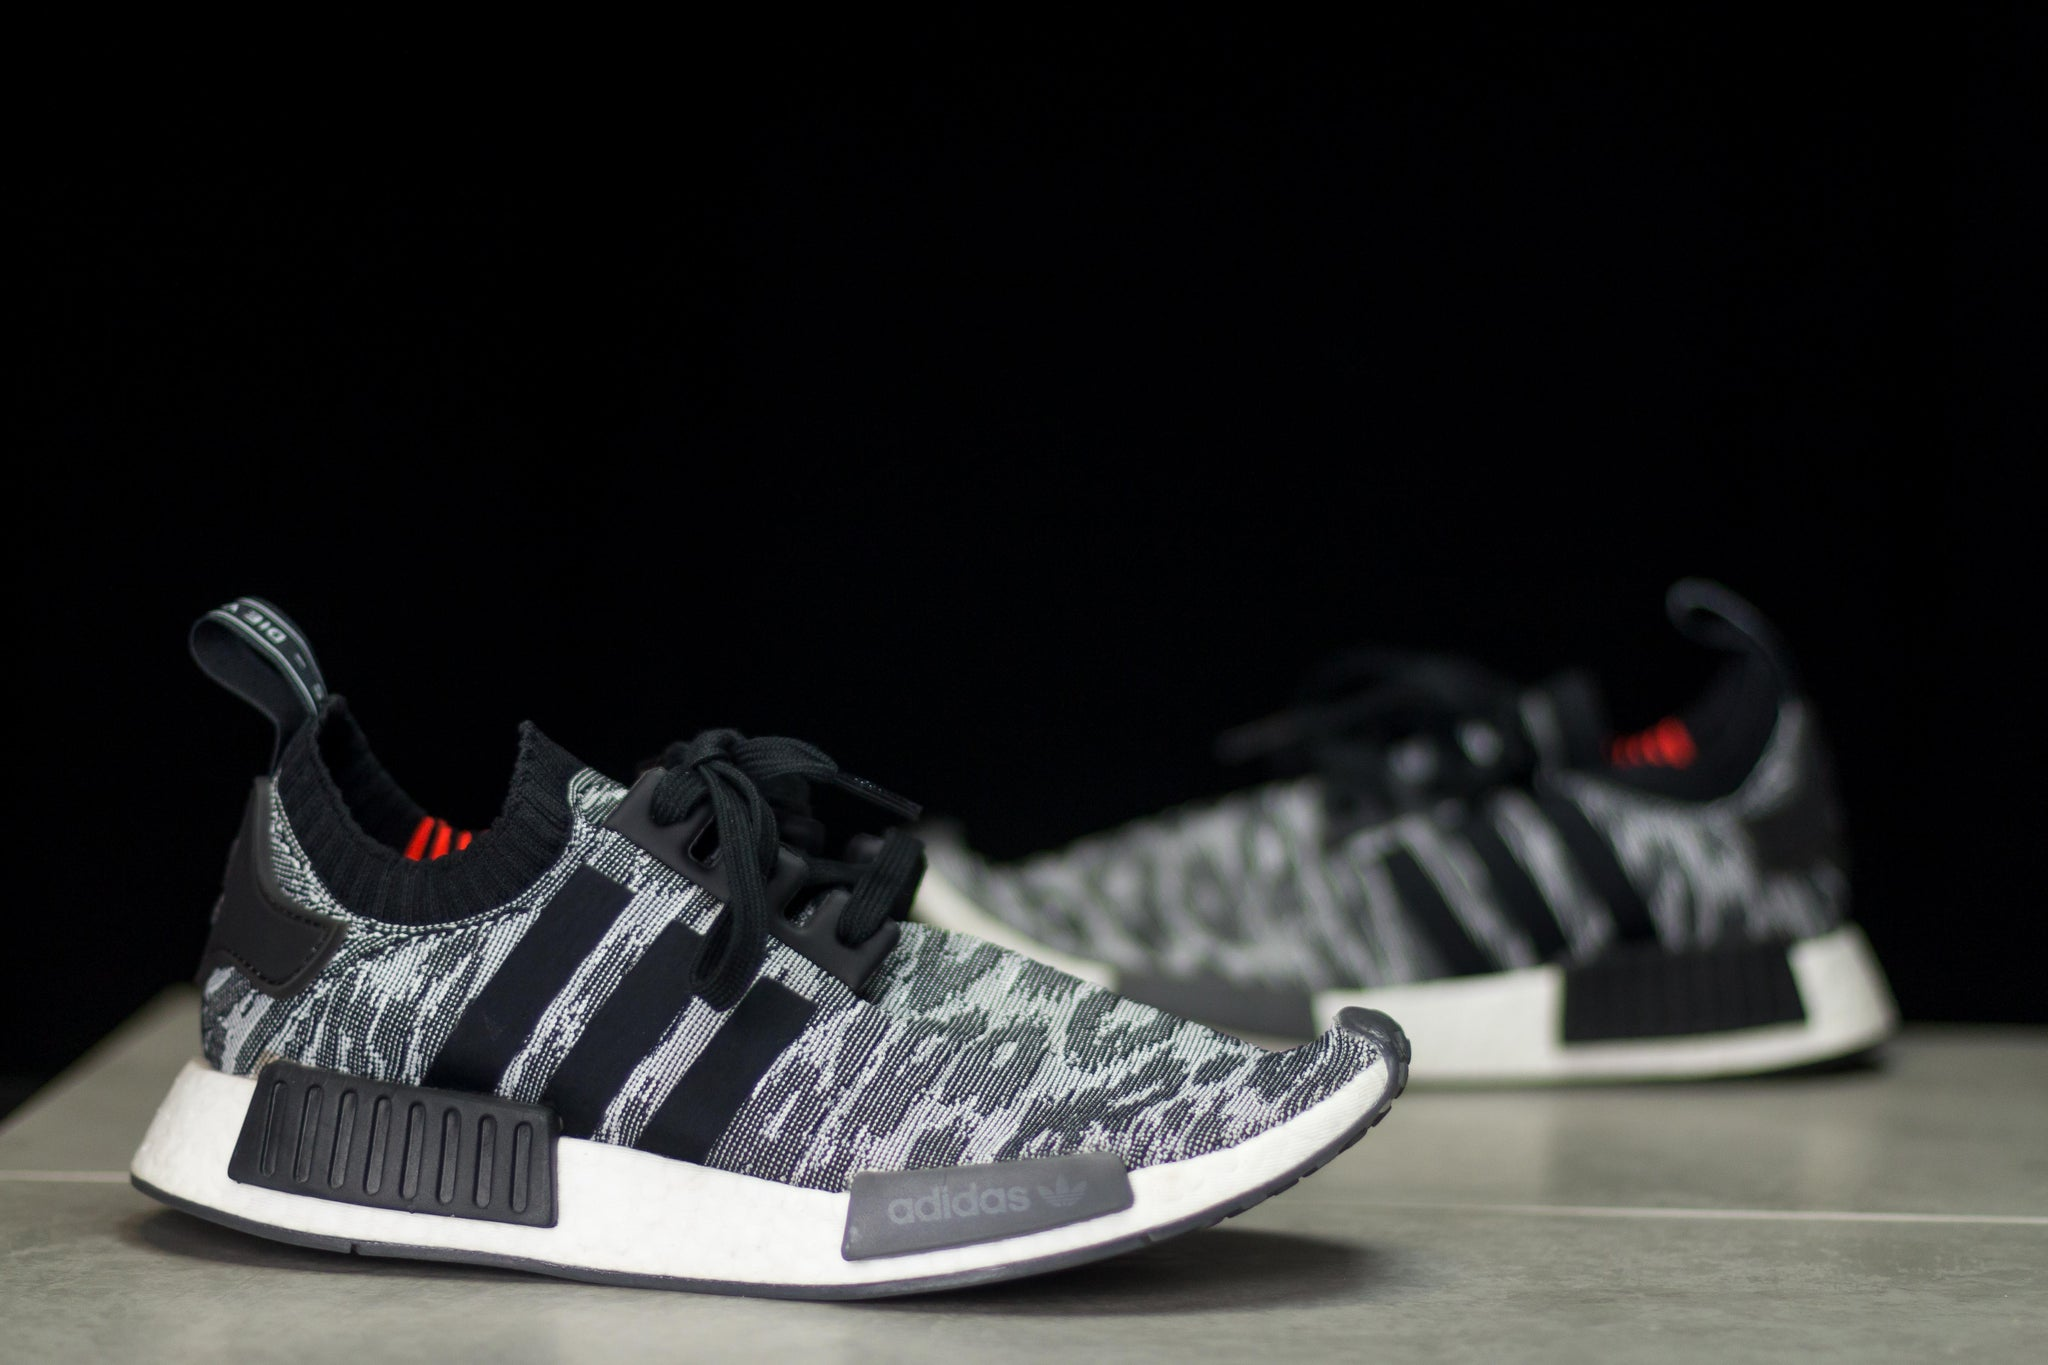 Adidas NMD R1 Black Glitch (8.5)